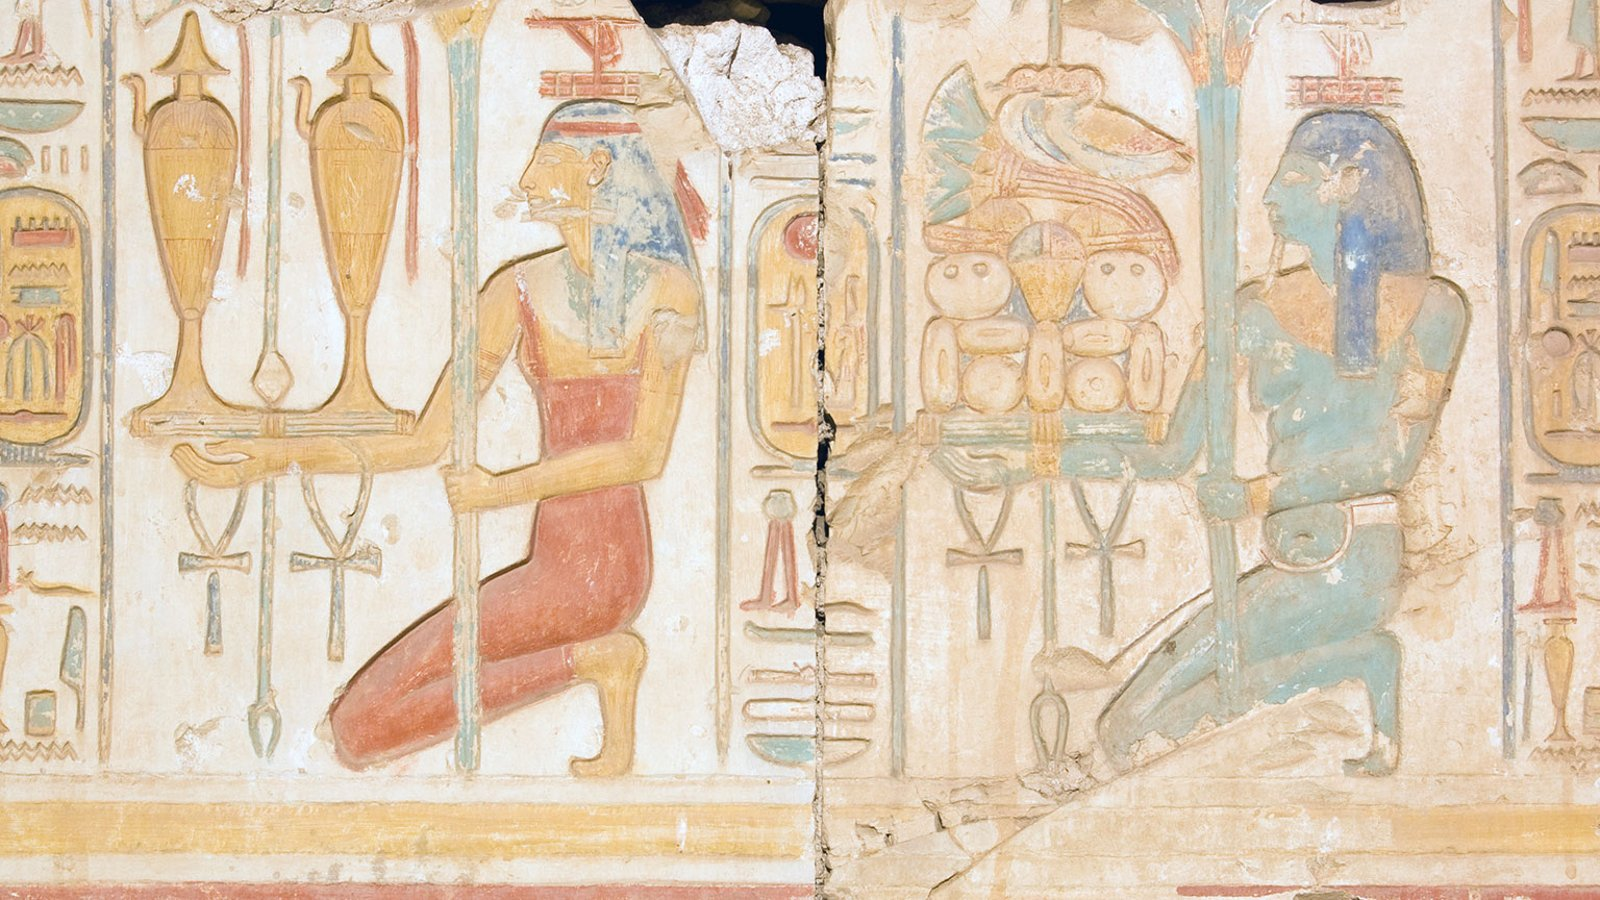 Egypt and the Gift of the Nile